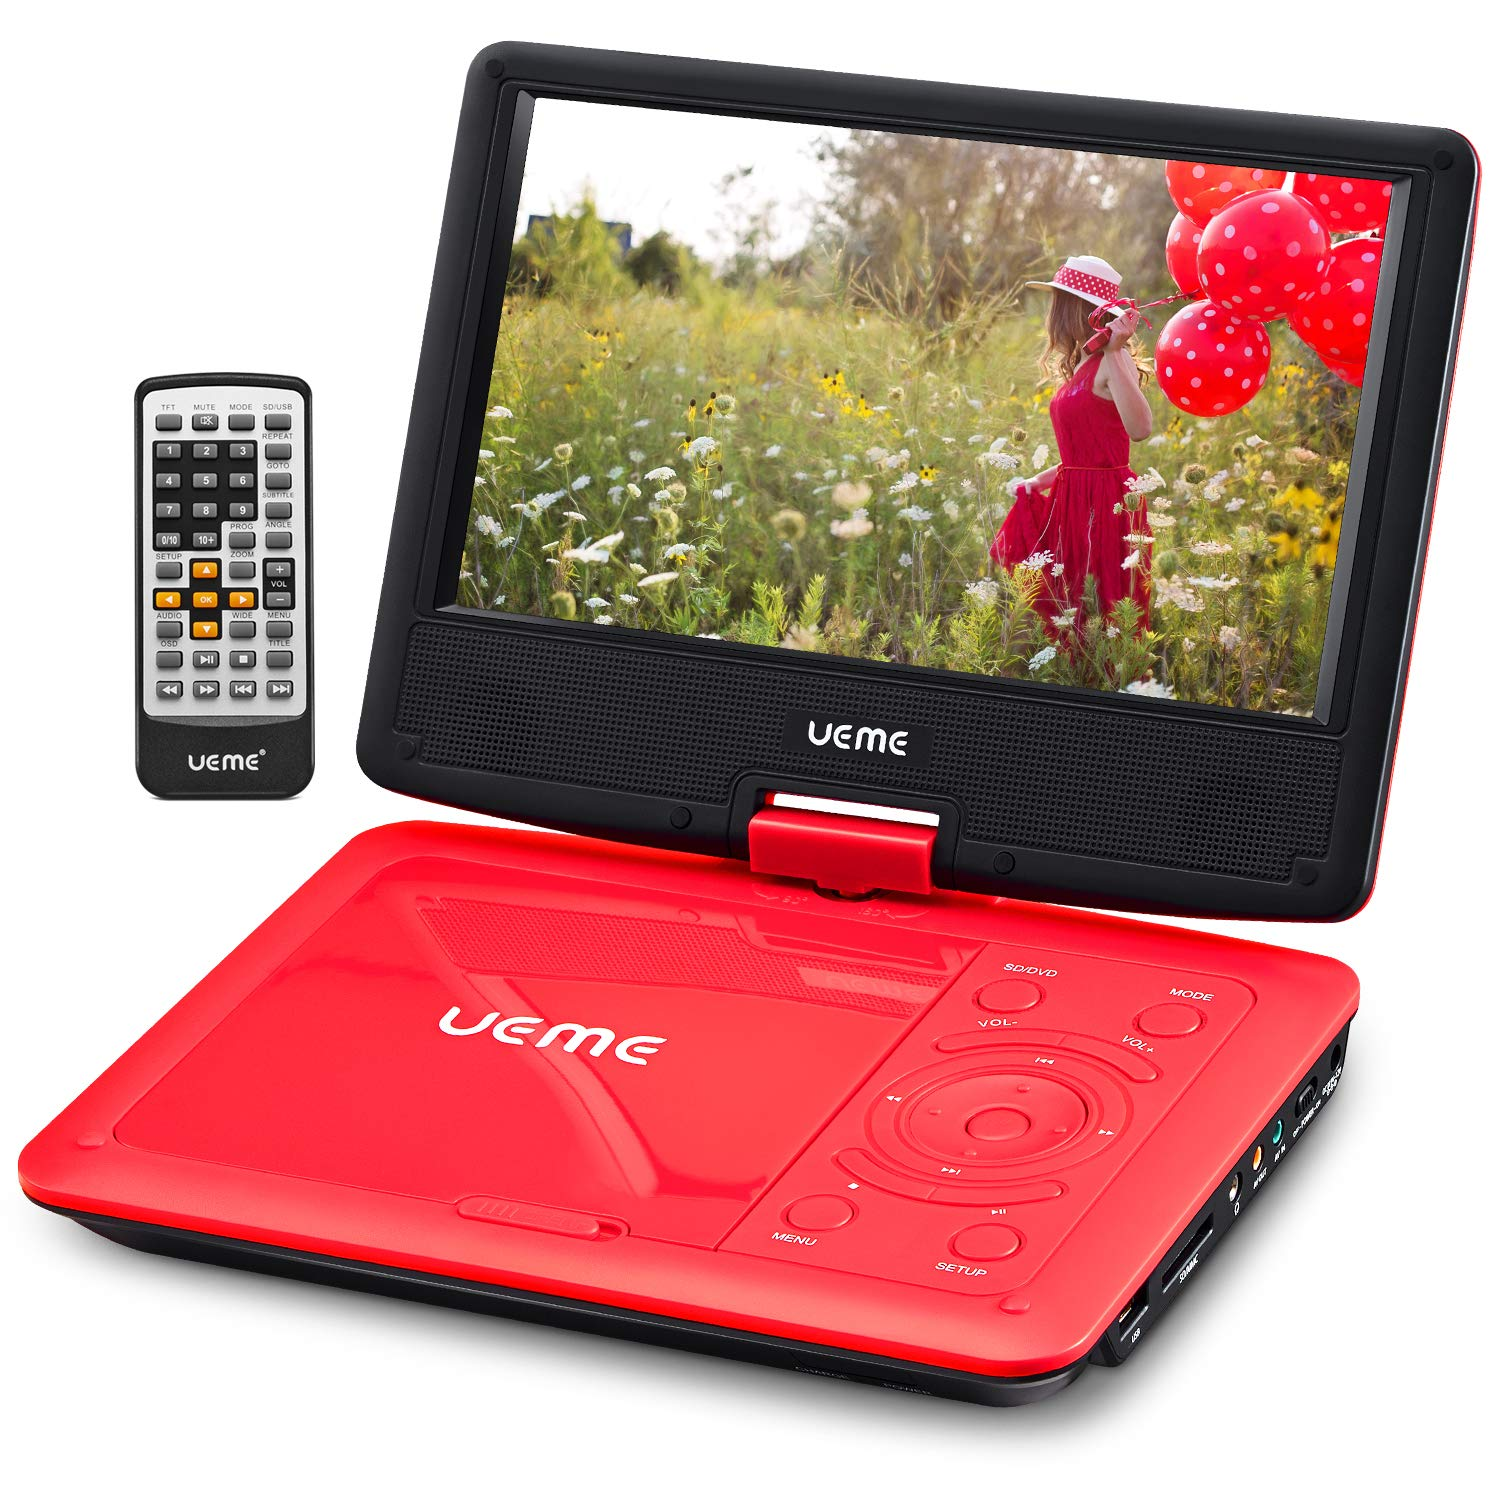 UEME Portable DVD CD Player with 9 Inches Screen, Car Headrest Mount Holder, Remote Control, Built in Rechargeable Battery, Wall Charger, Car Charger, Personal DVD Players (Red)